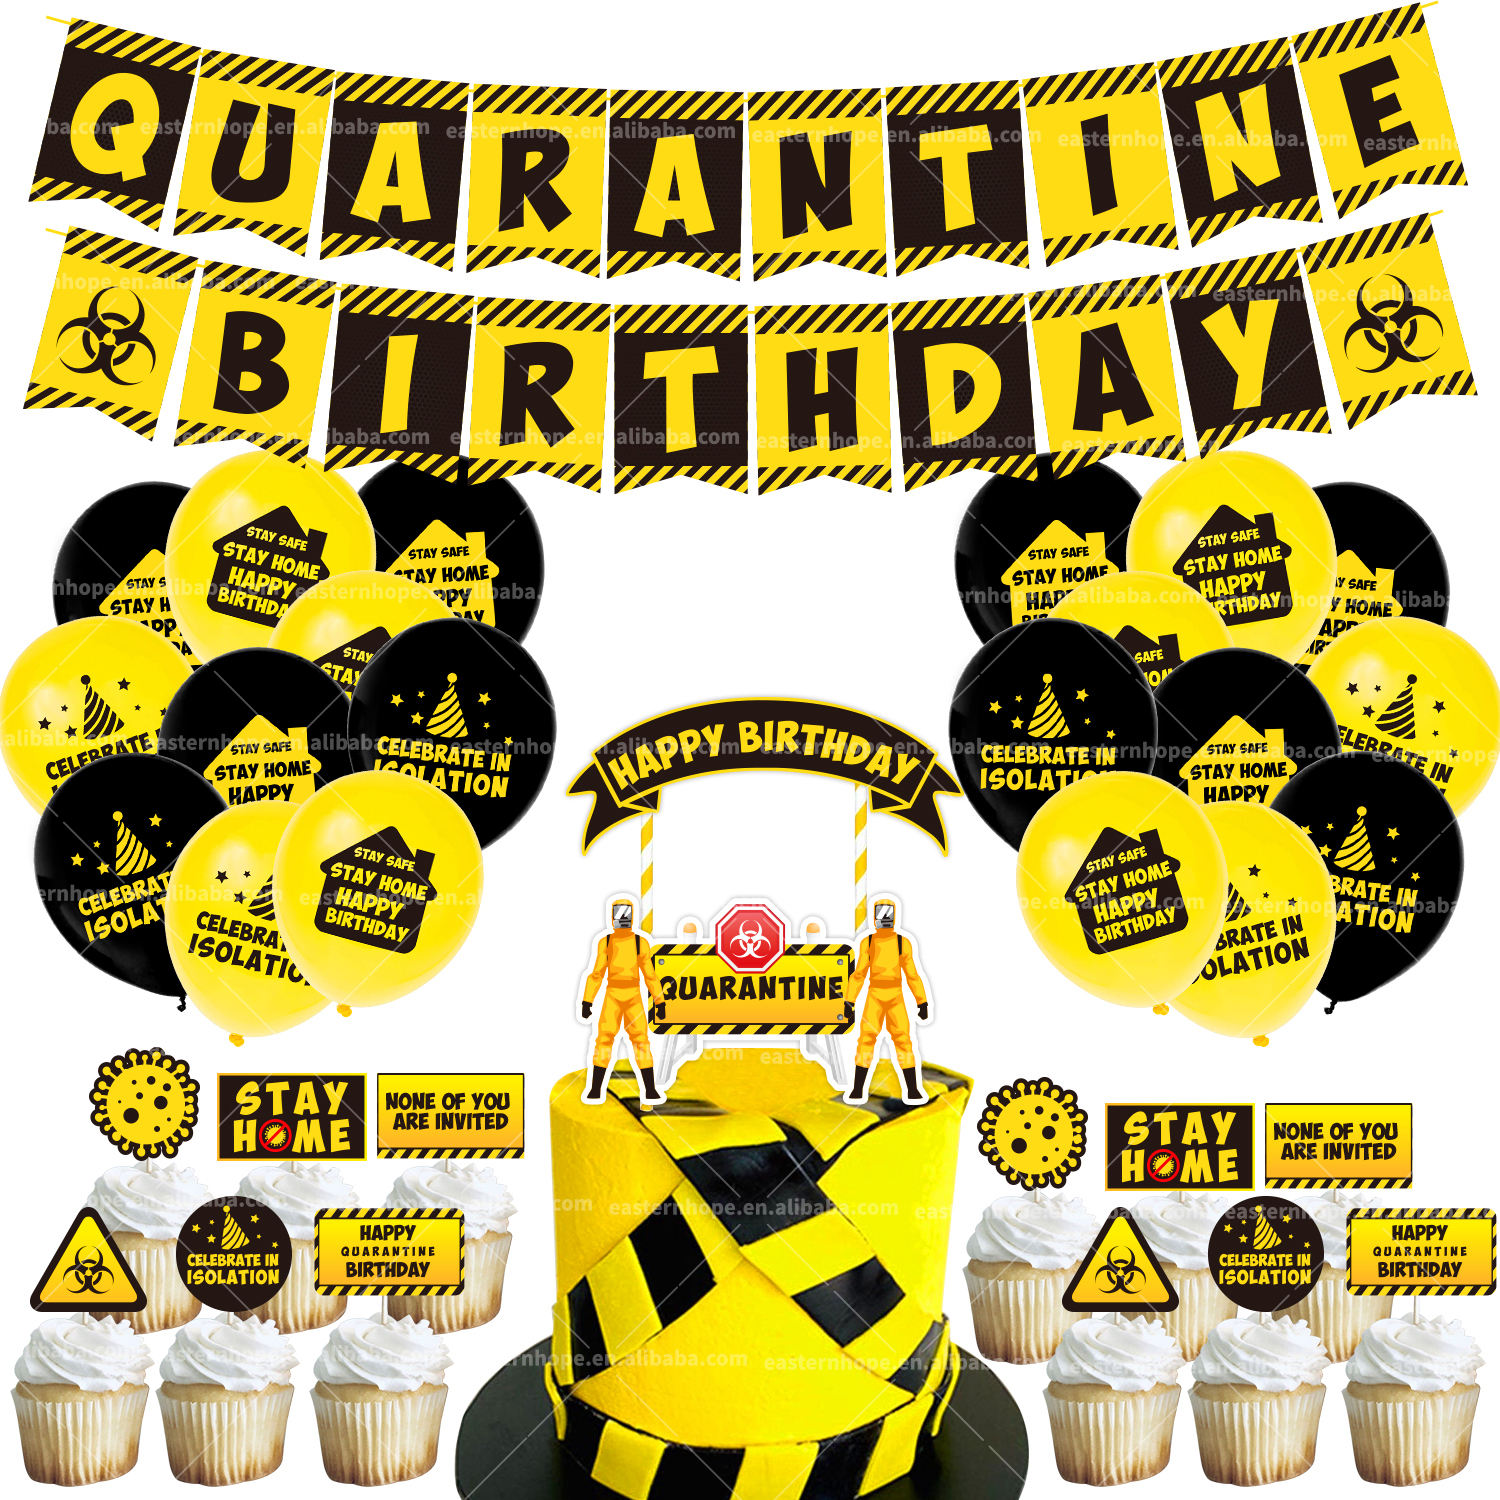 Stay at Home Party Decorations Social Distancing Quarantine Birthday Supplies Set Quarantine Party Supplies